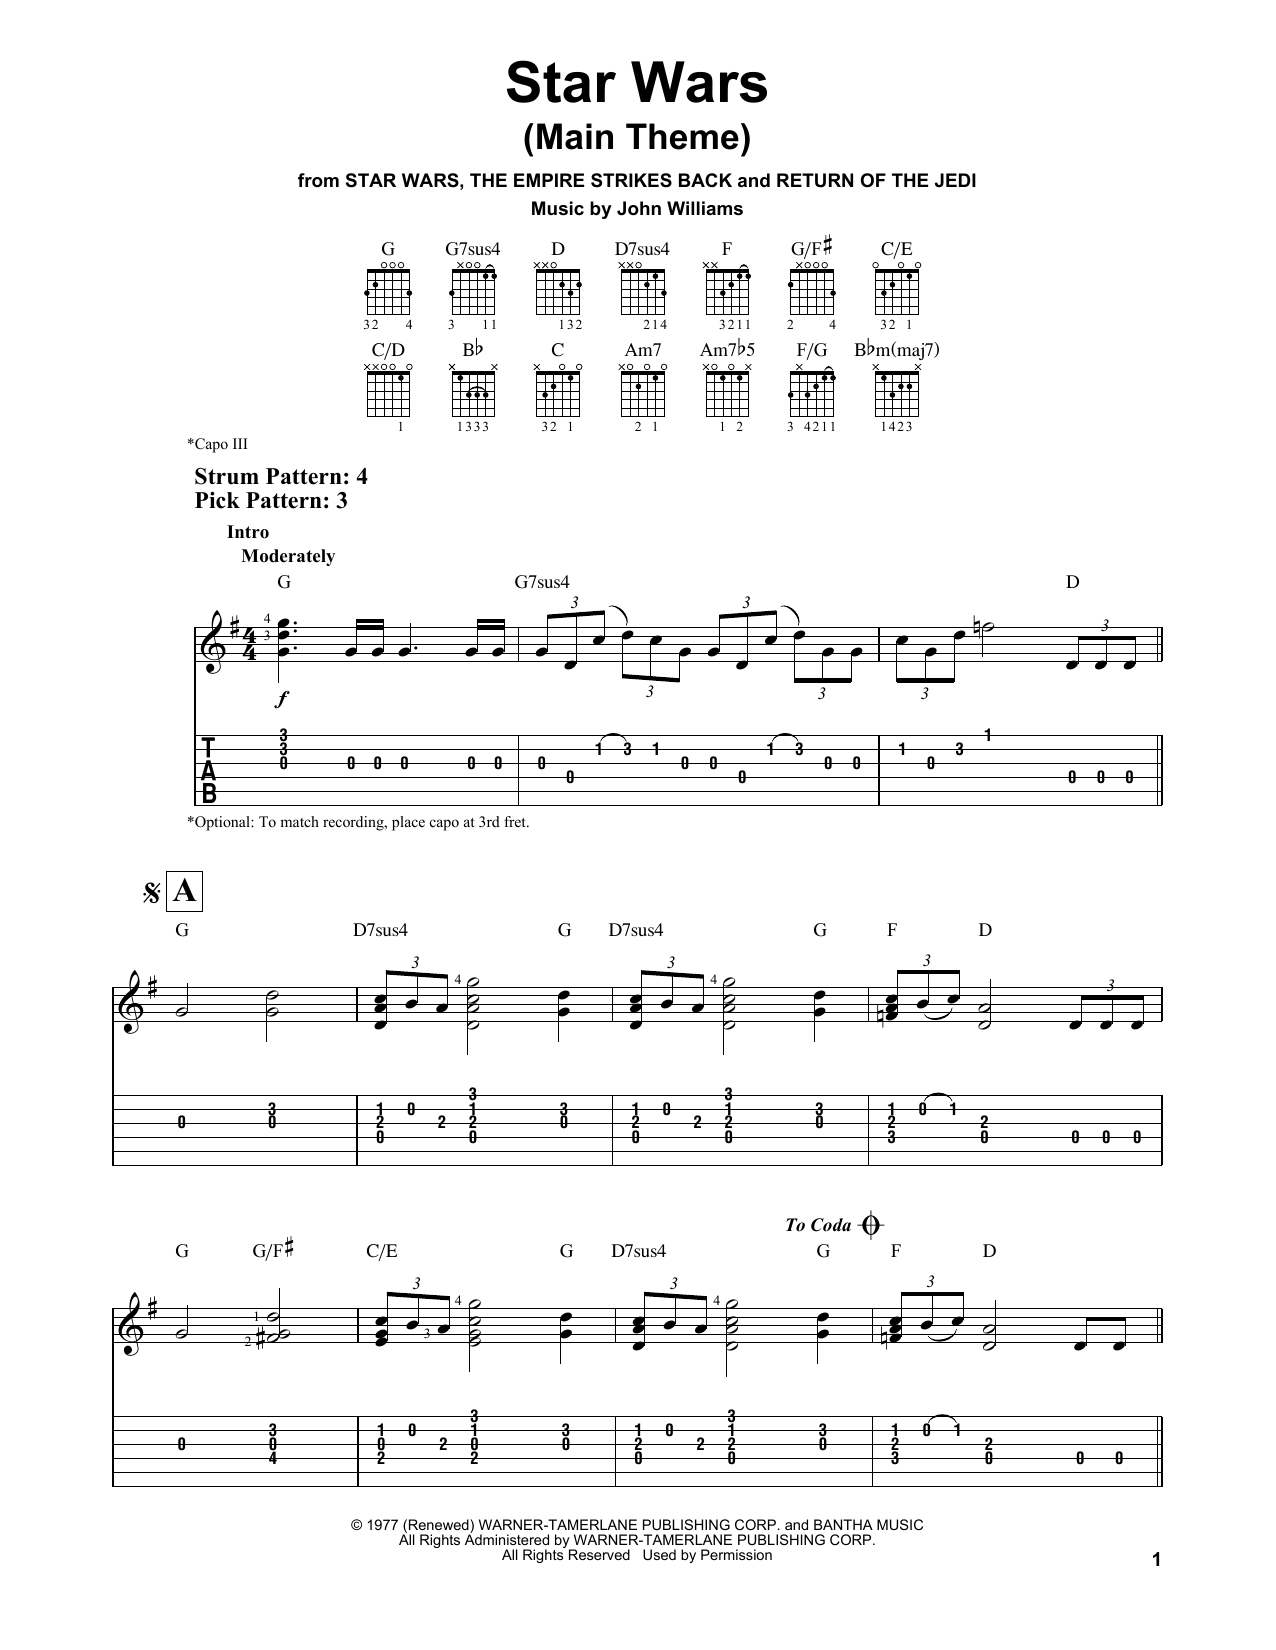 Star Wars (Main Theme) by John Williams - Easy Guitar Tab - Guitar Instructor